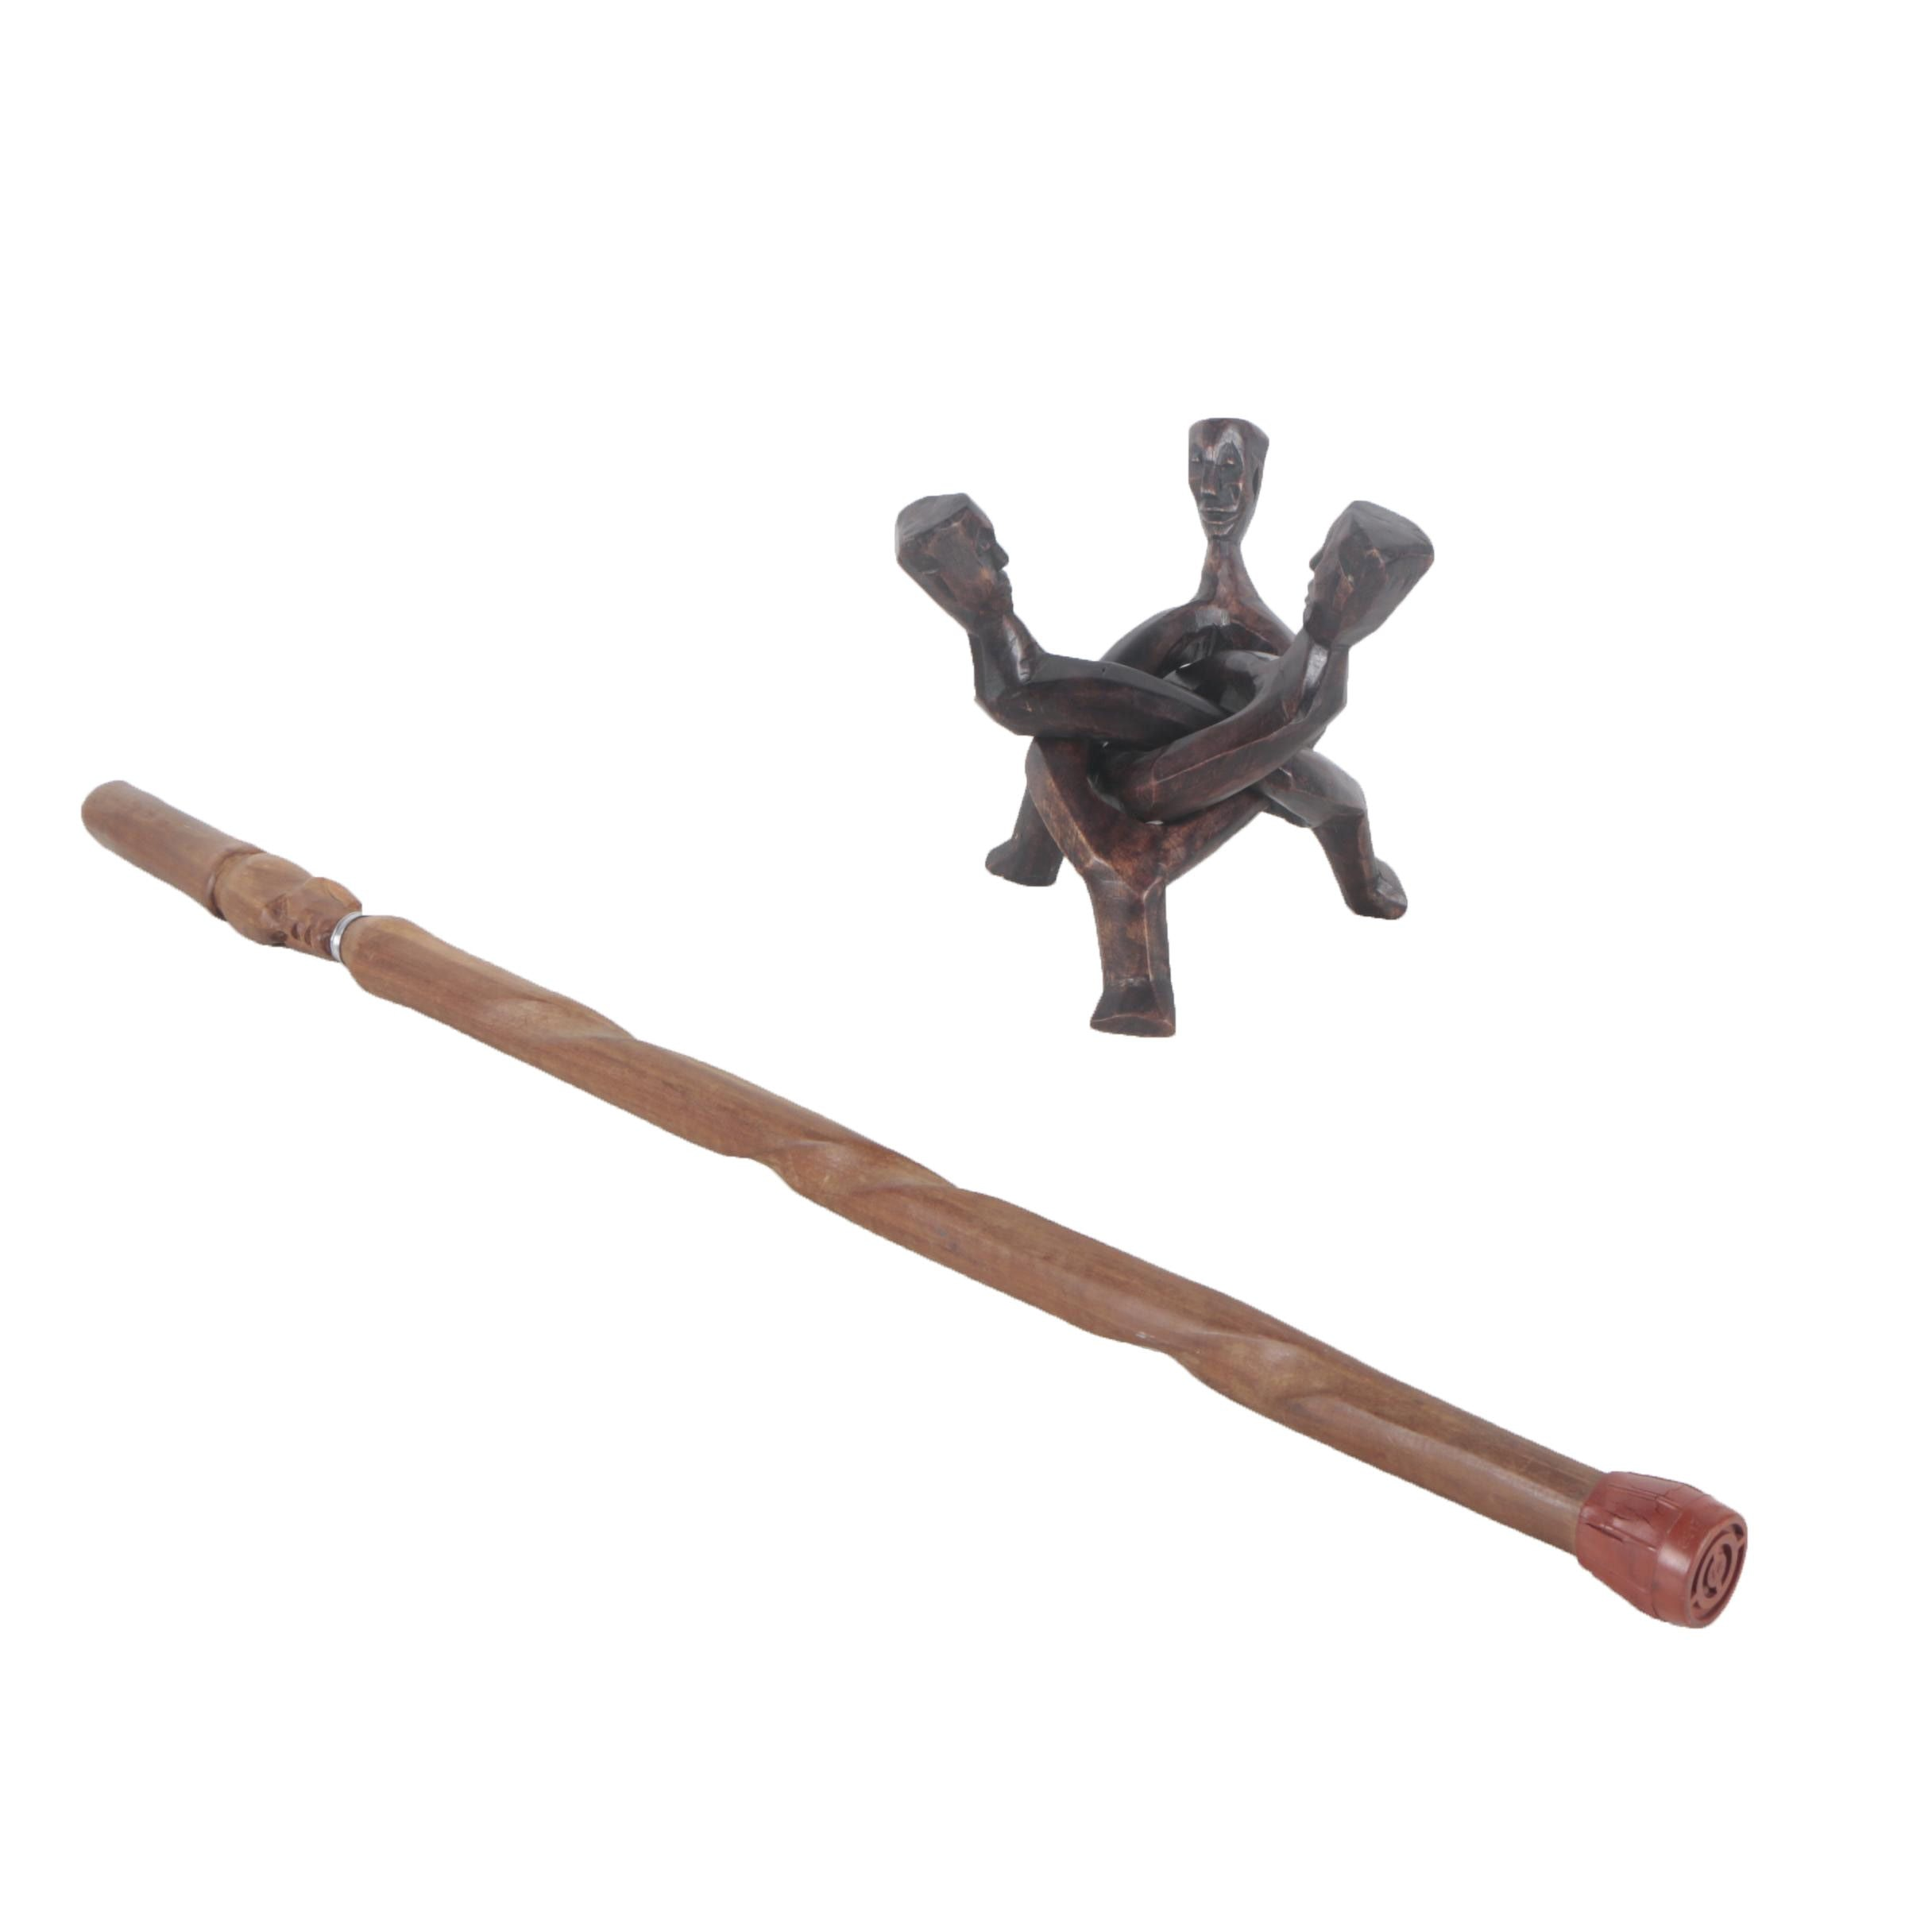 East African Style Wood Figural Sculpture and Walking Stick